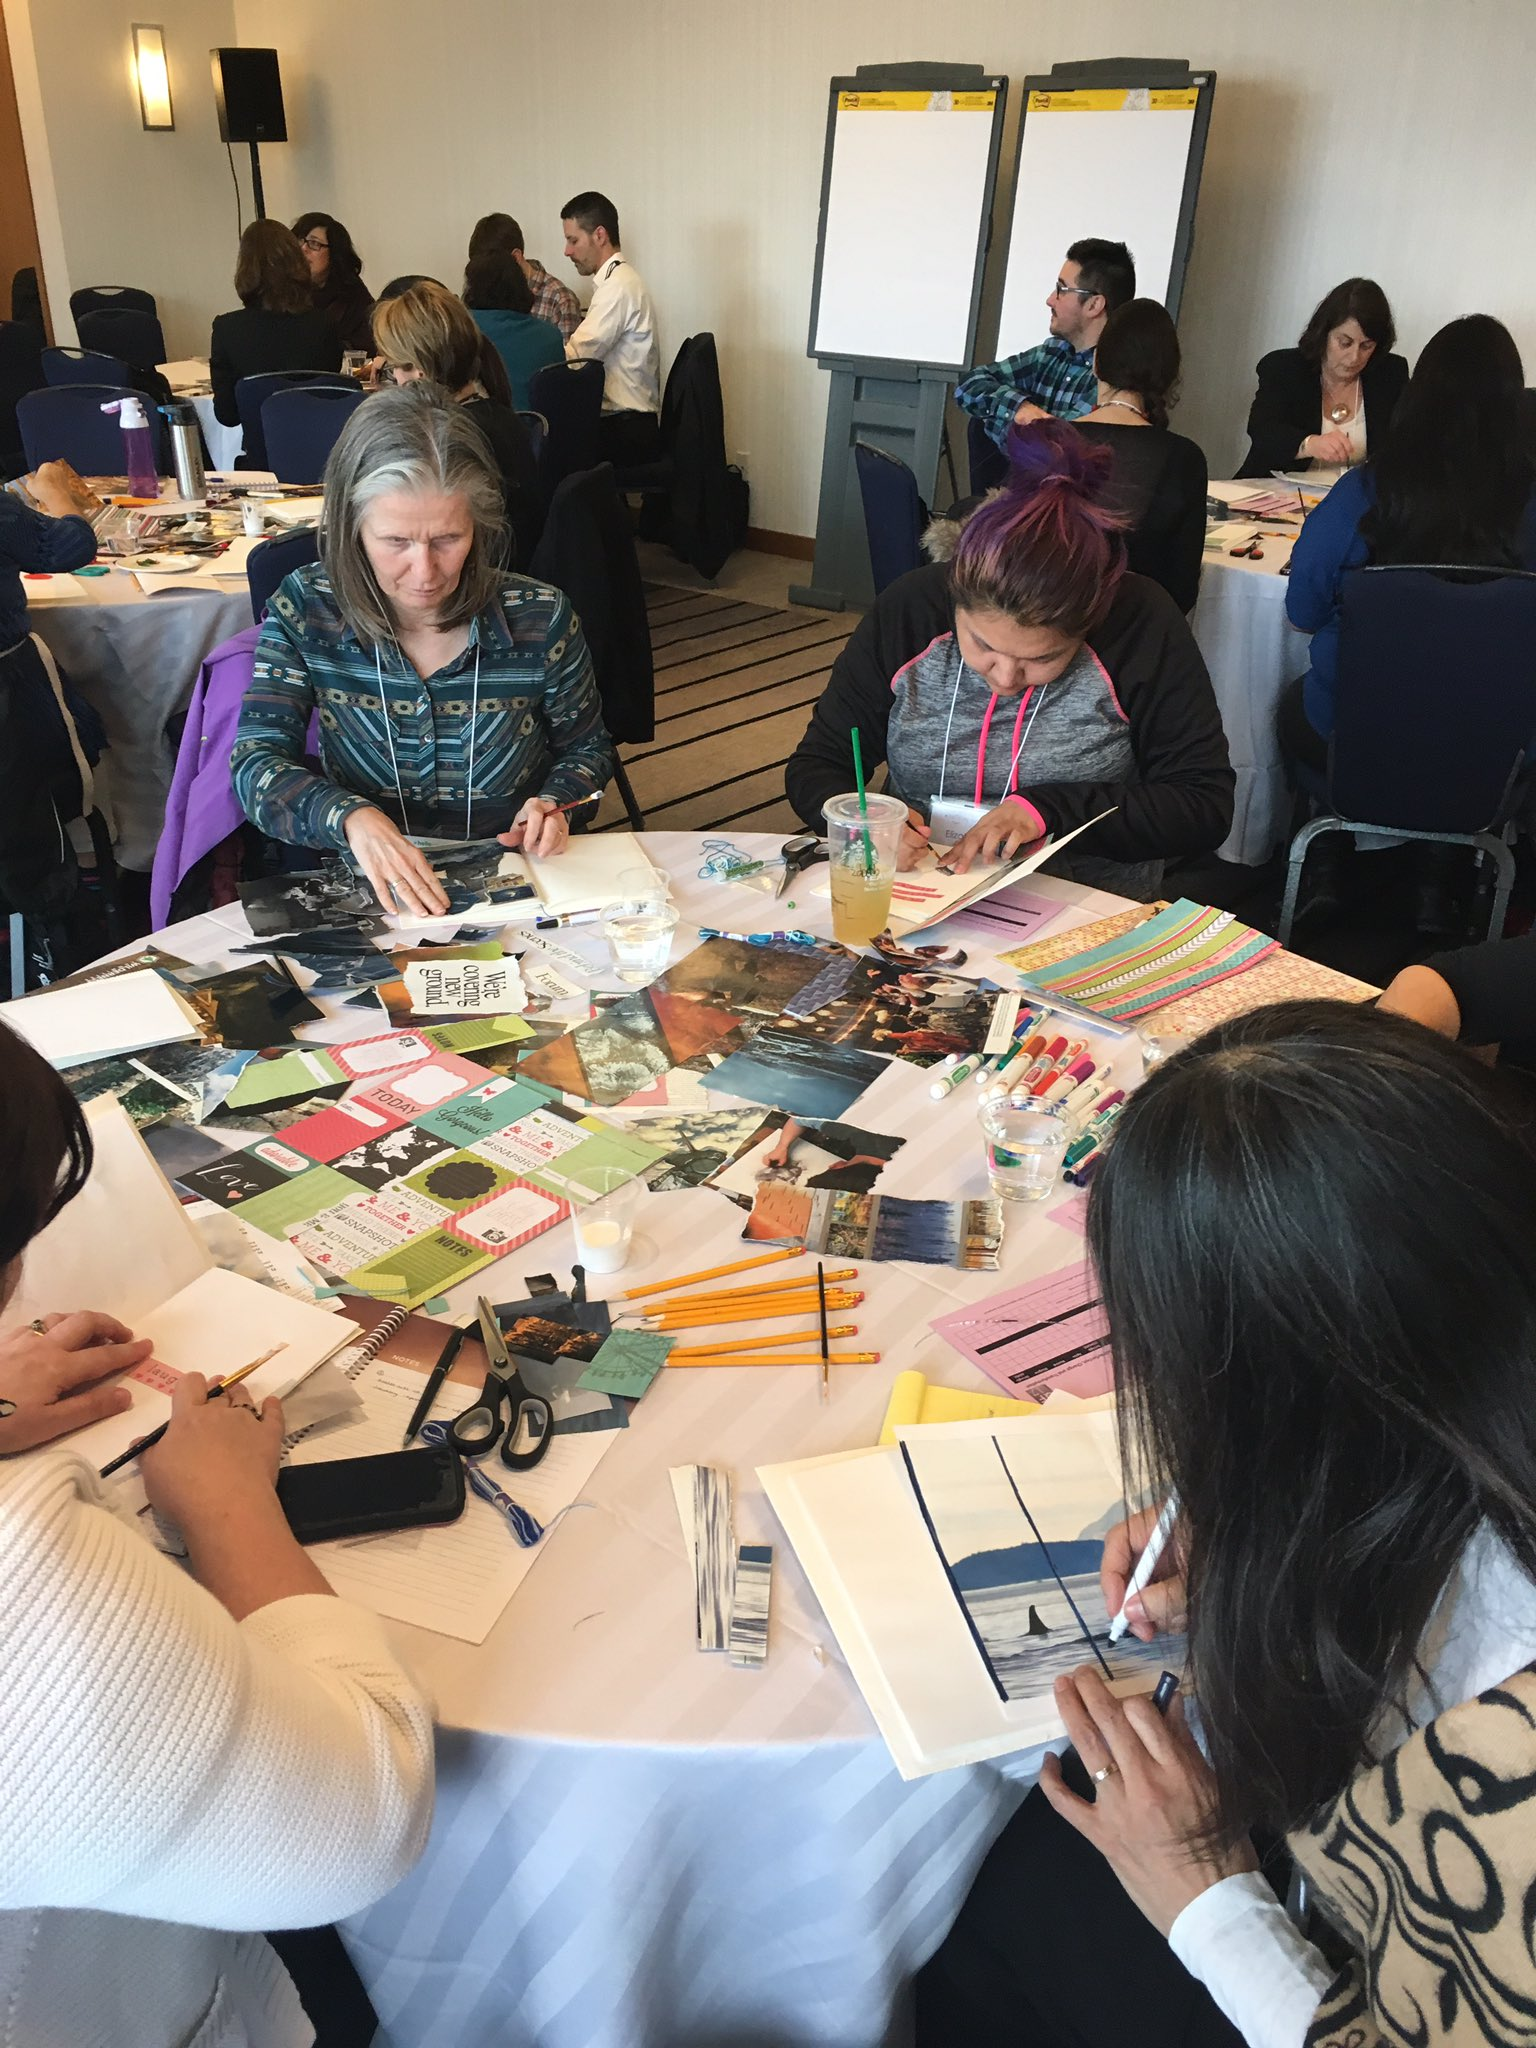 Visual stories are key in learning for settler people about Indigenous people. Participants in action! #QF17 #culturalhumility #bchc https://t.co/6PPNqb1Zo6